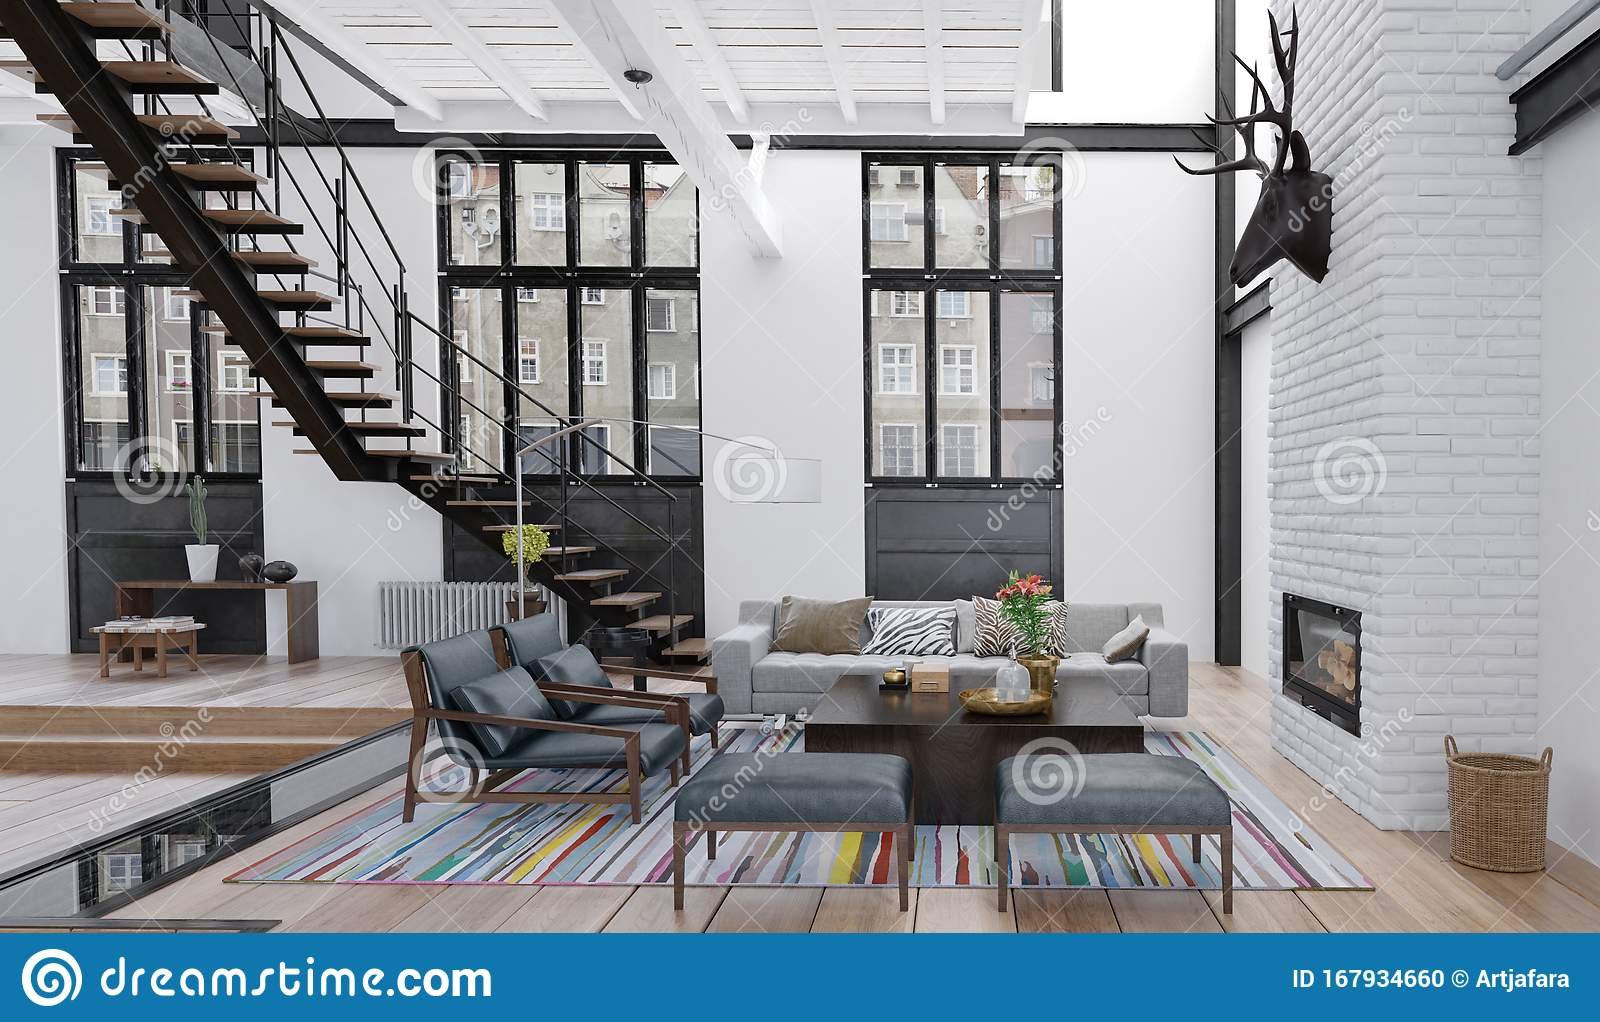 Living Room In Loft Apartment Industrial Interior 3d Illustration Ill Stock Illustration Illustration Of Large Farm 167934660